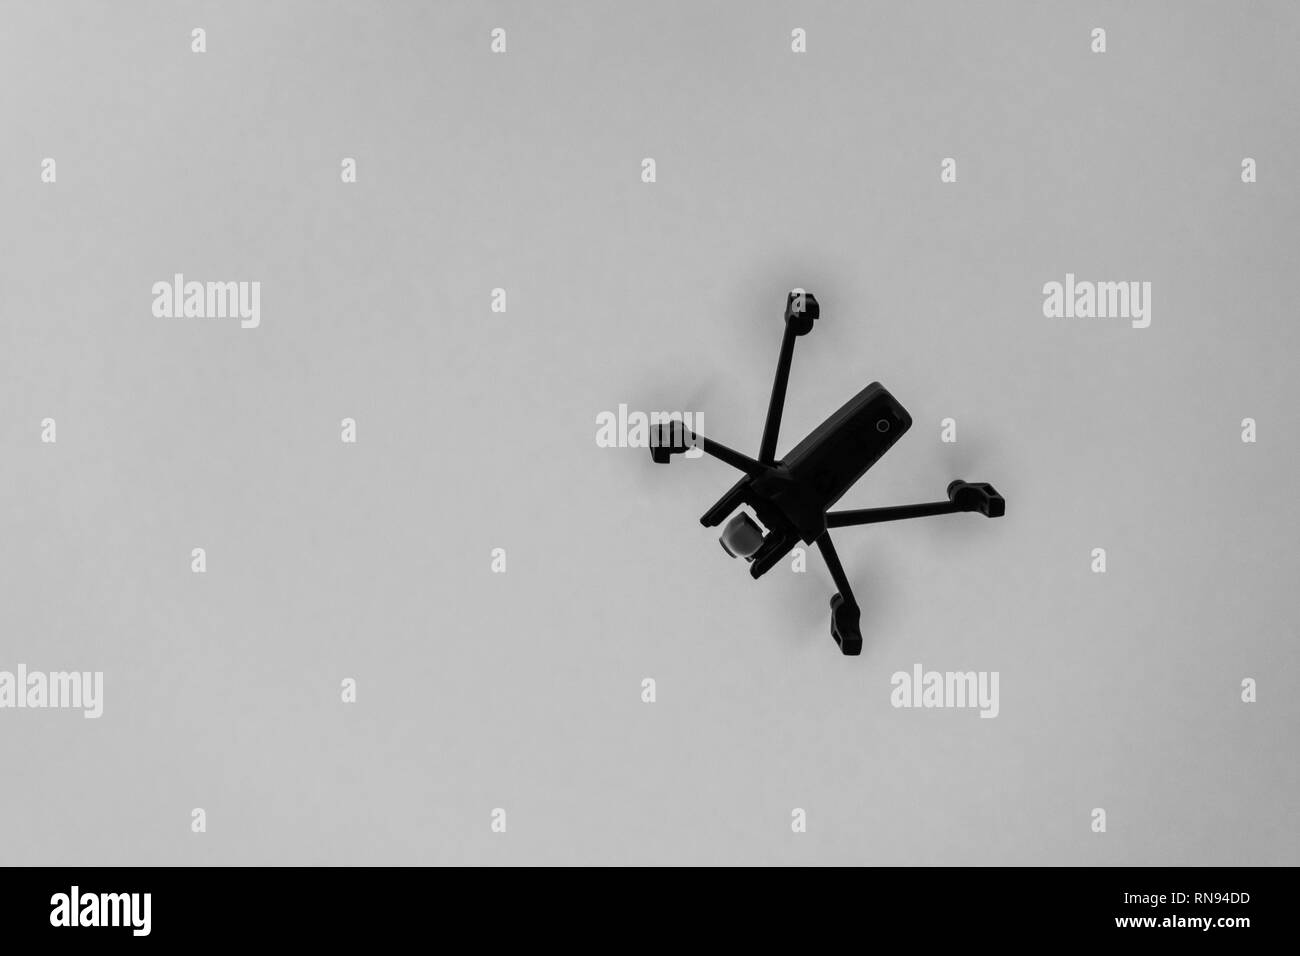 Drone aka unmanned airborne vehicle taking aerial pictures in black and white - Stock Image